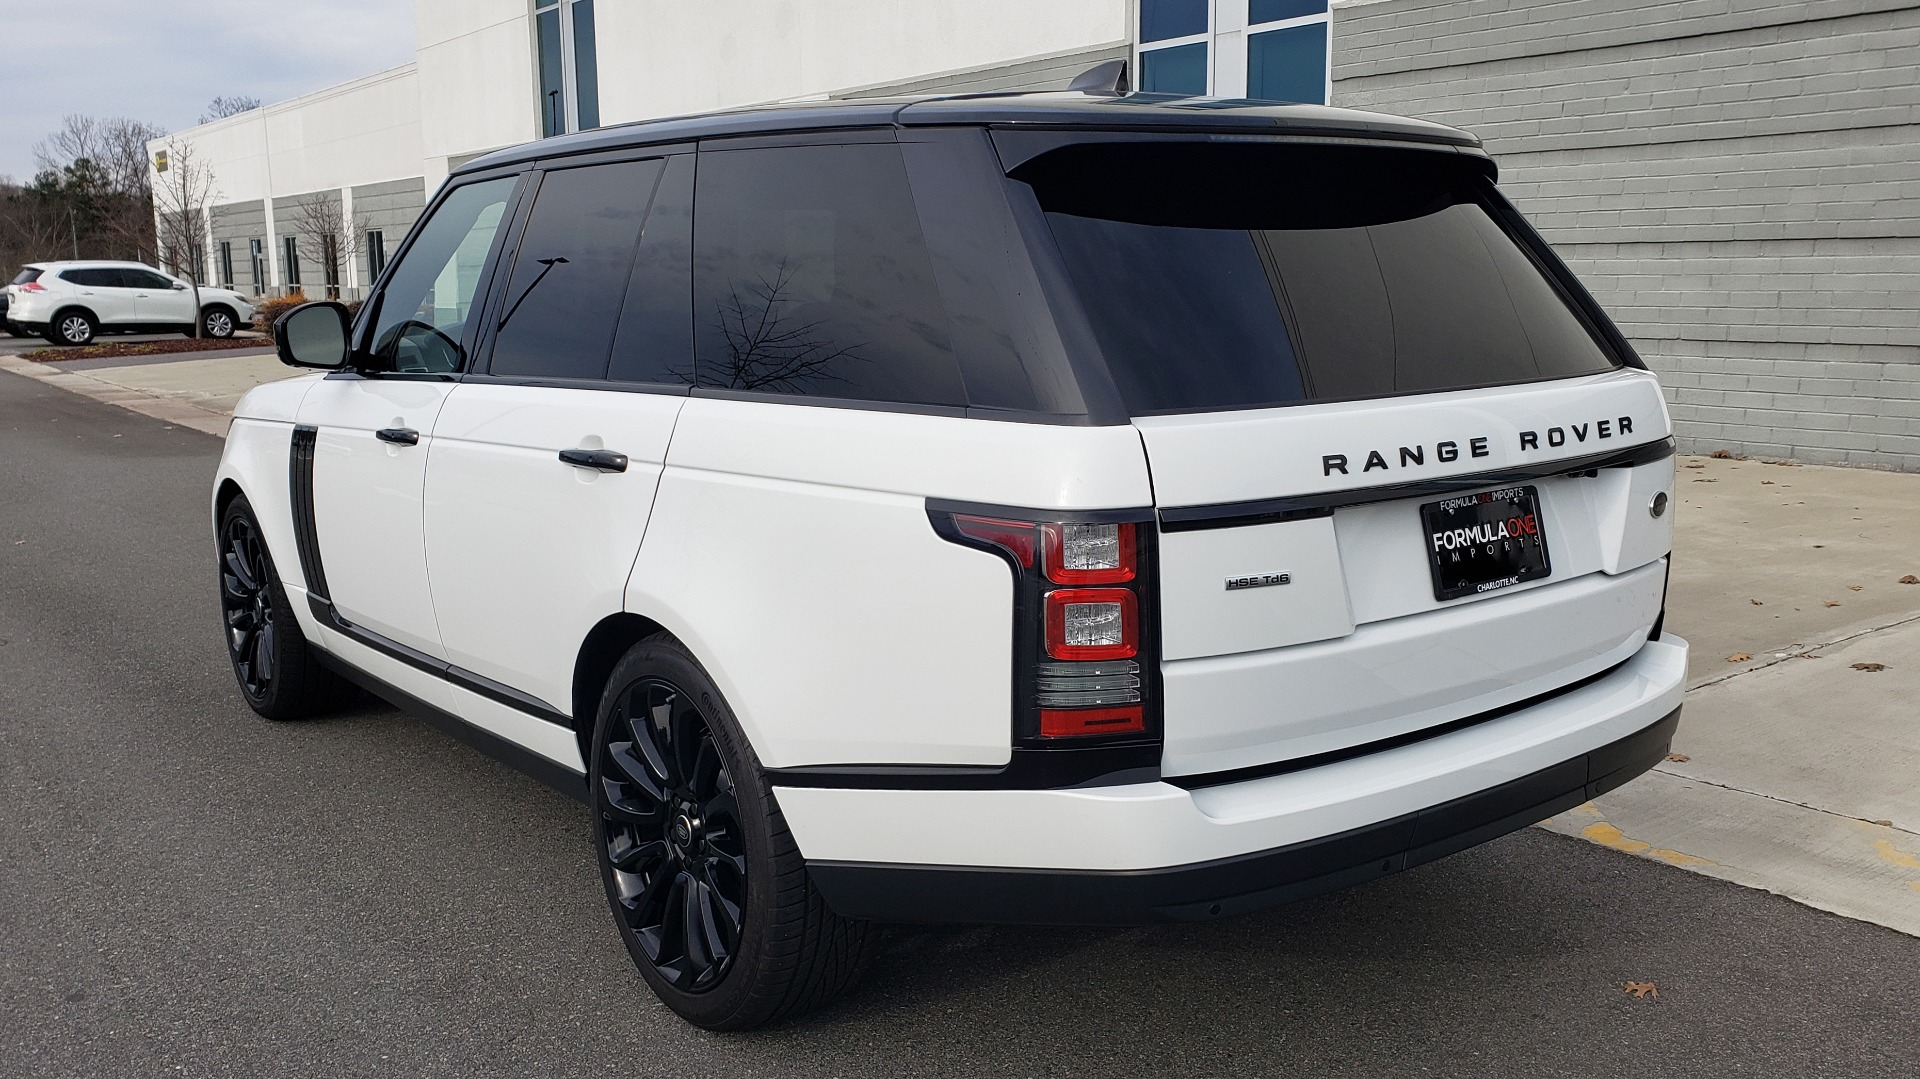 Used 2017 Land Rover RANGE ROVER HSE TD6 DIESEL / 4WD / NAV / MERIDIAN / PANO-ROOF / REARVIEW for sale $59,999 at Formula Imports in Charlotte NC 28227 3